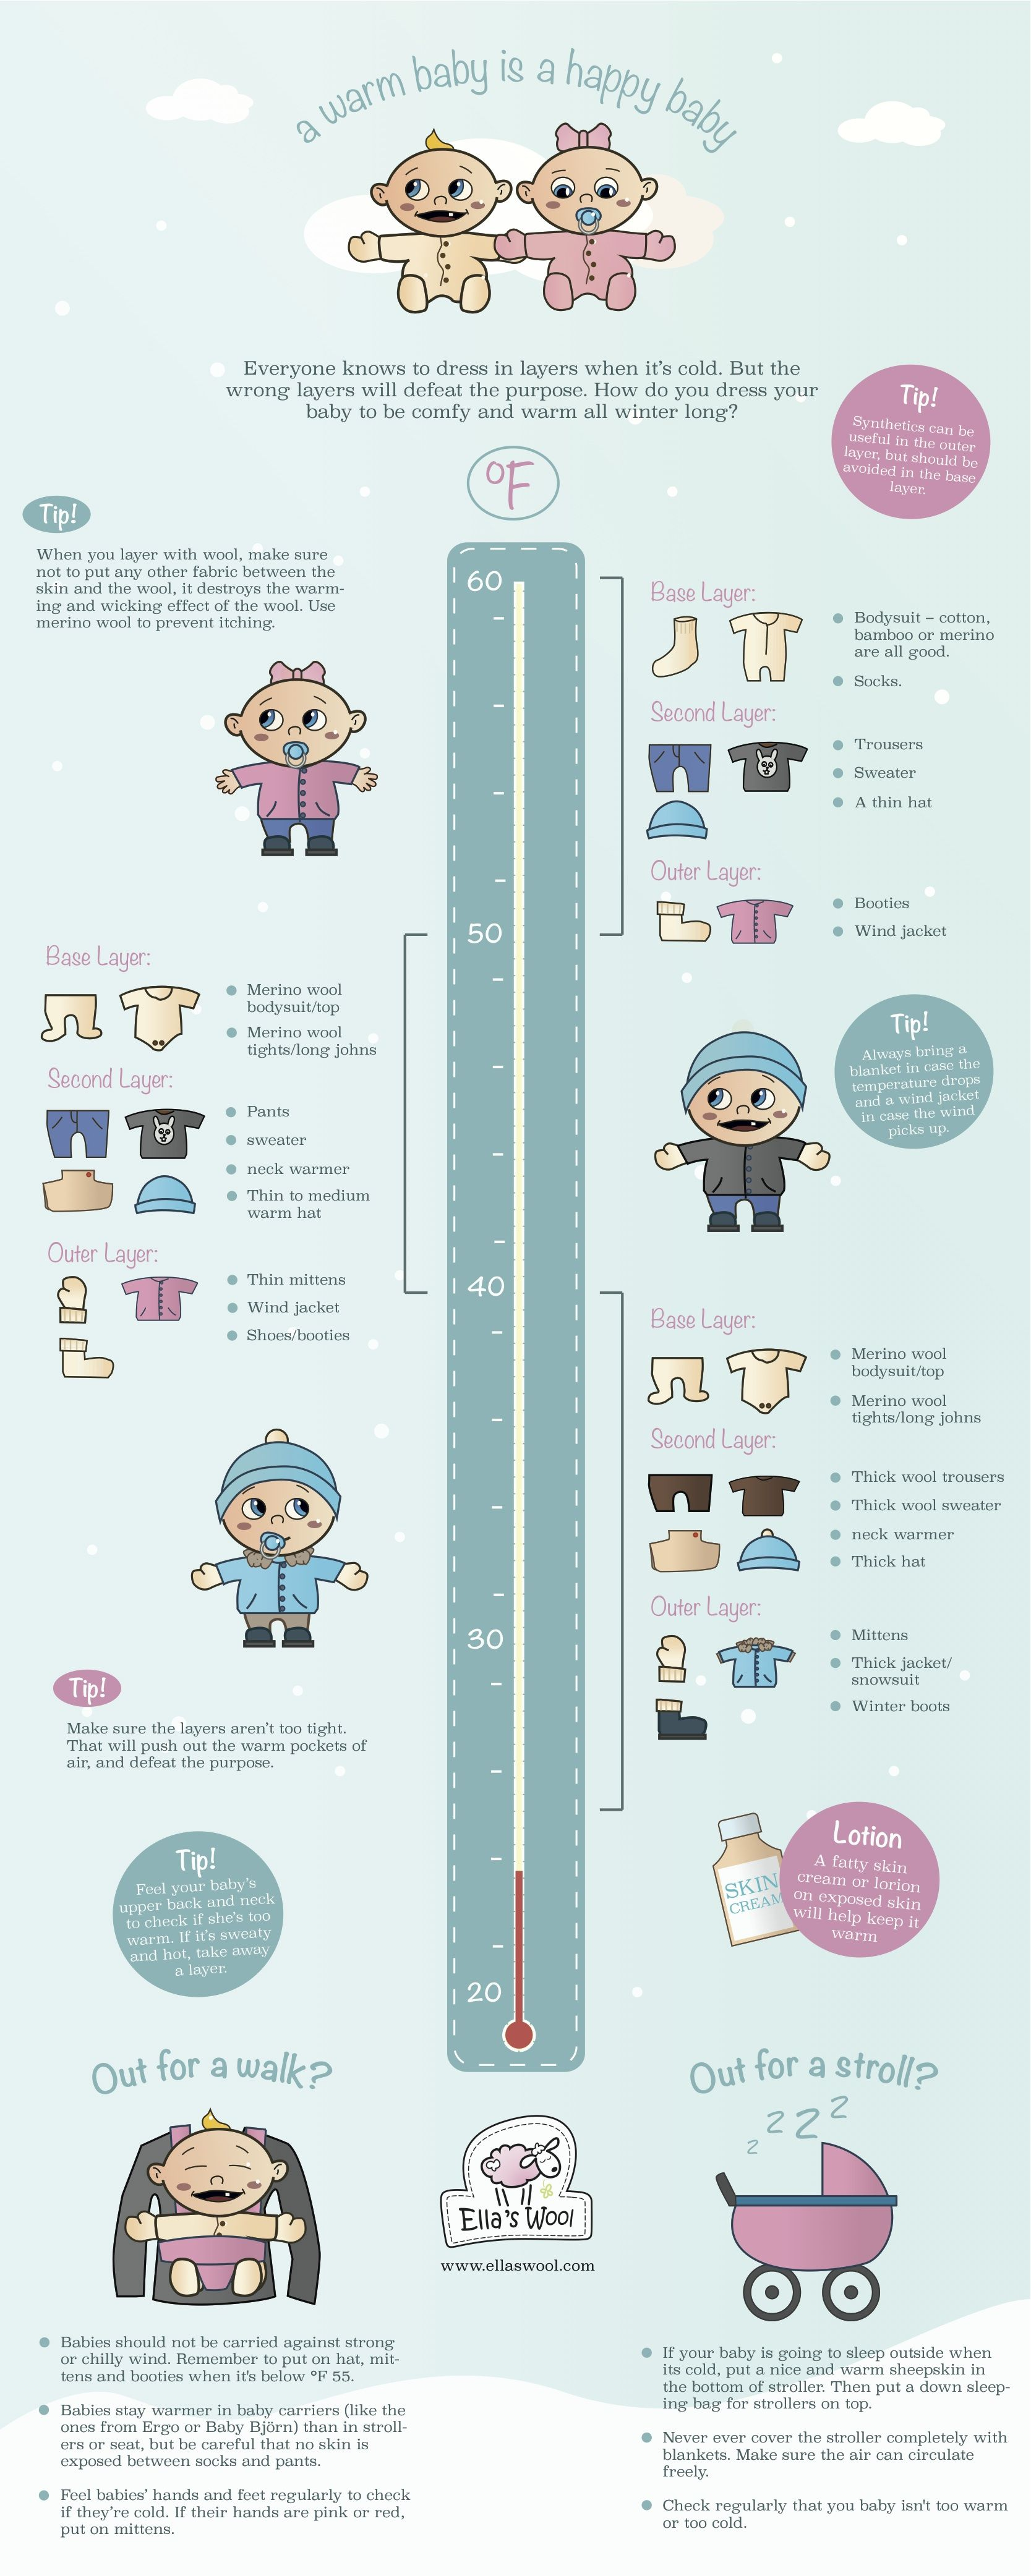 how to tell if baby is cold at night